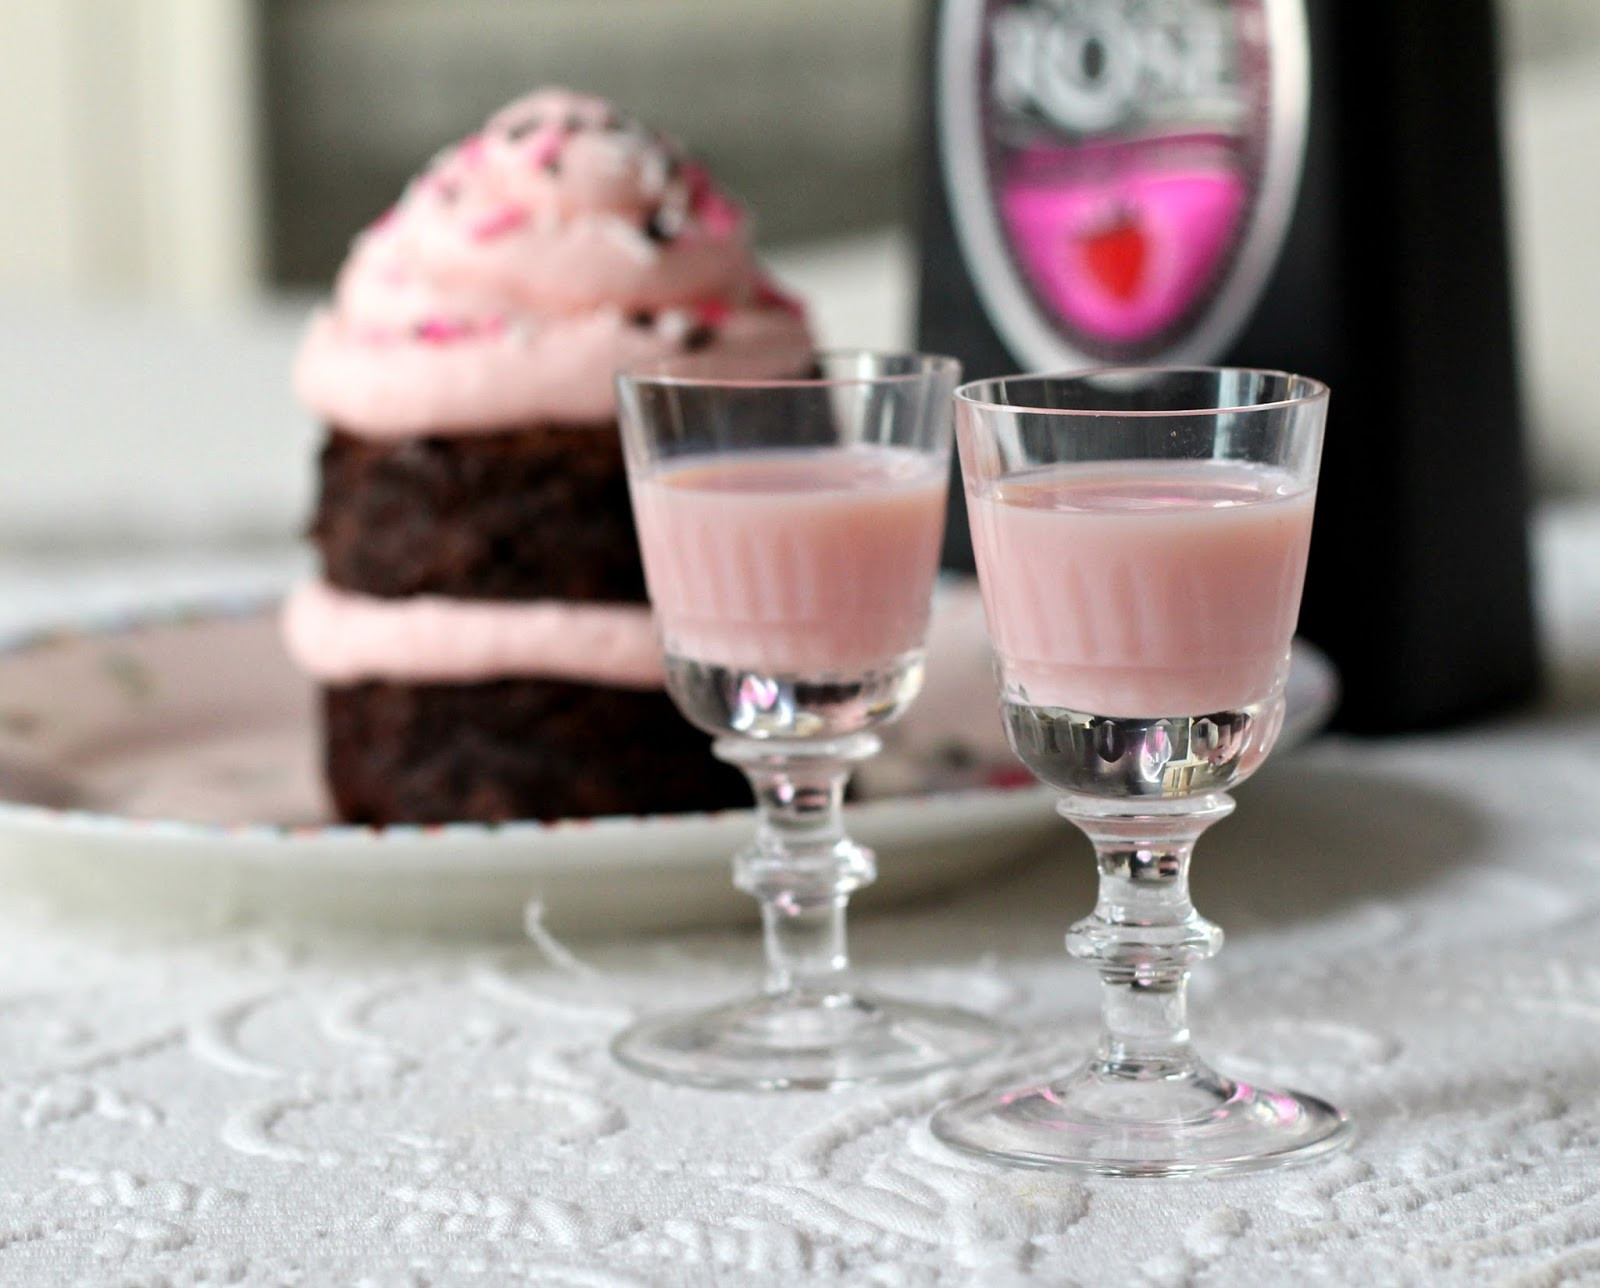 Tequila Rose Drinks Recipes  Tequila Rose Strawberry Cream Frosting